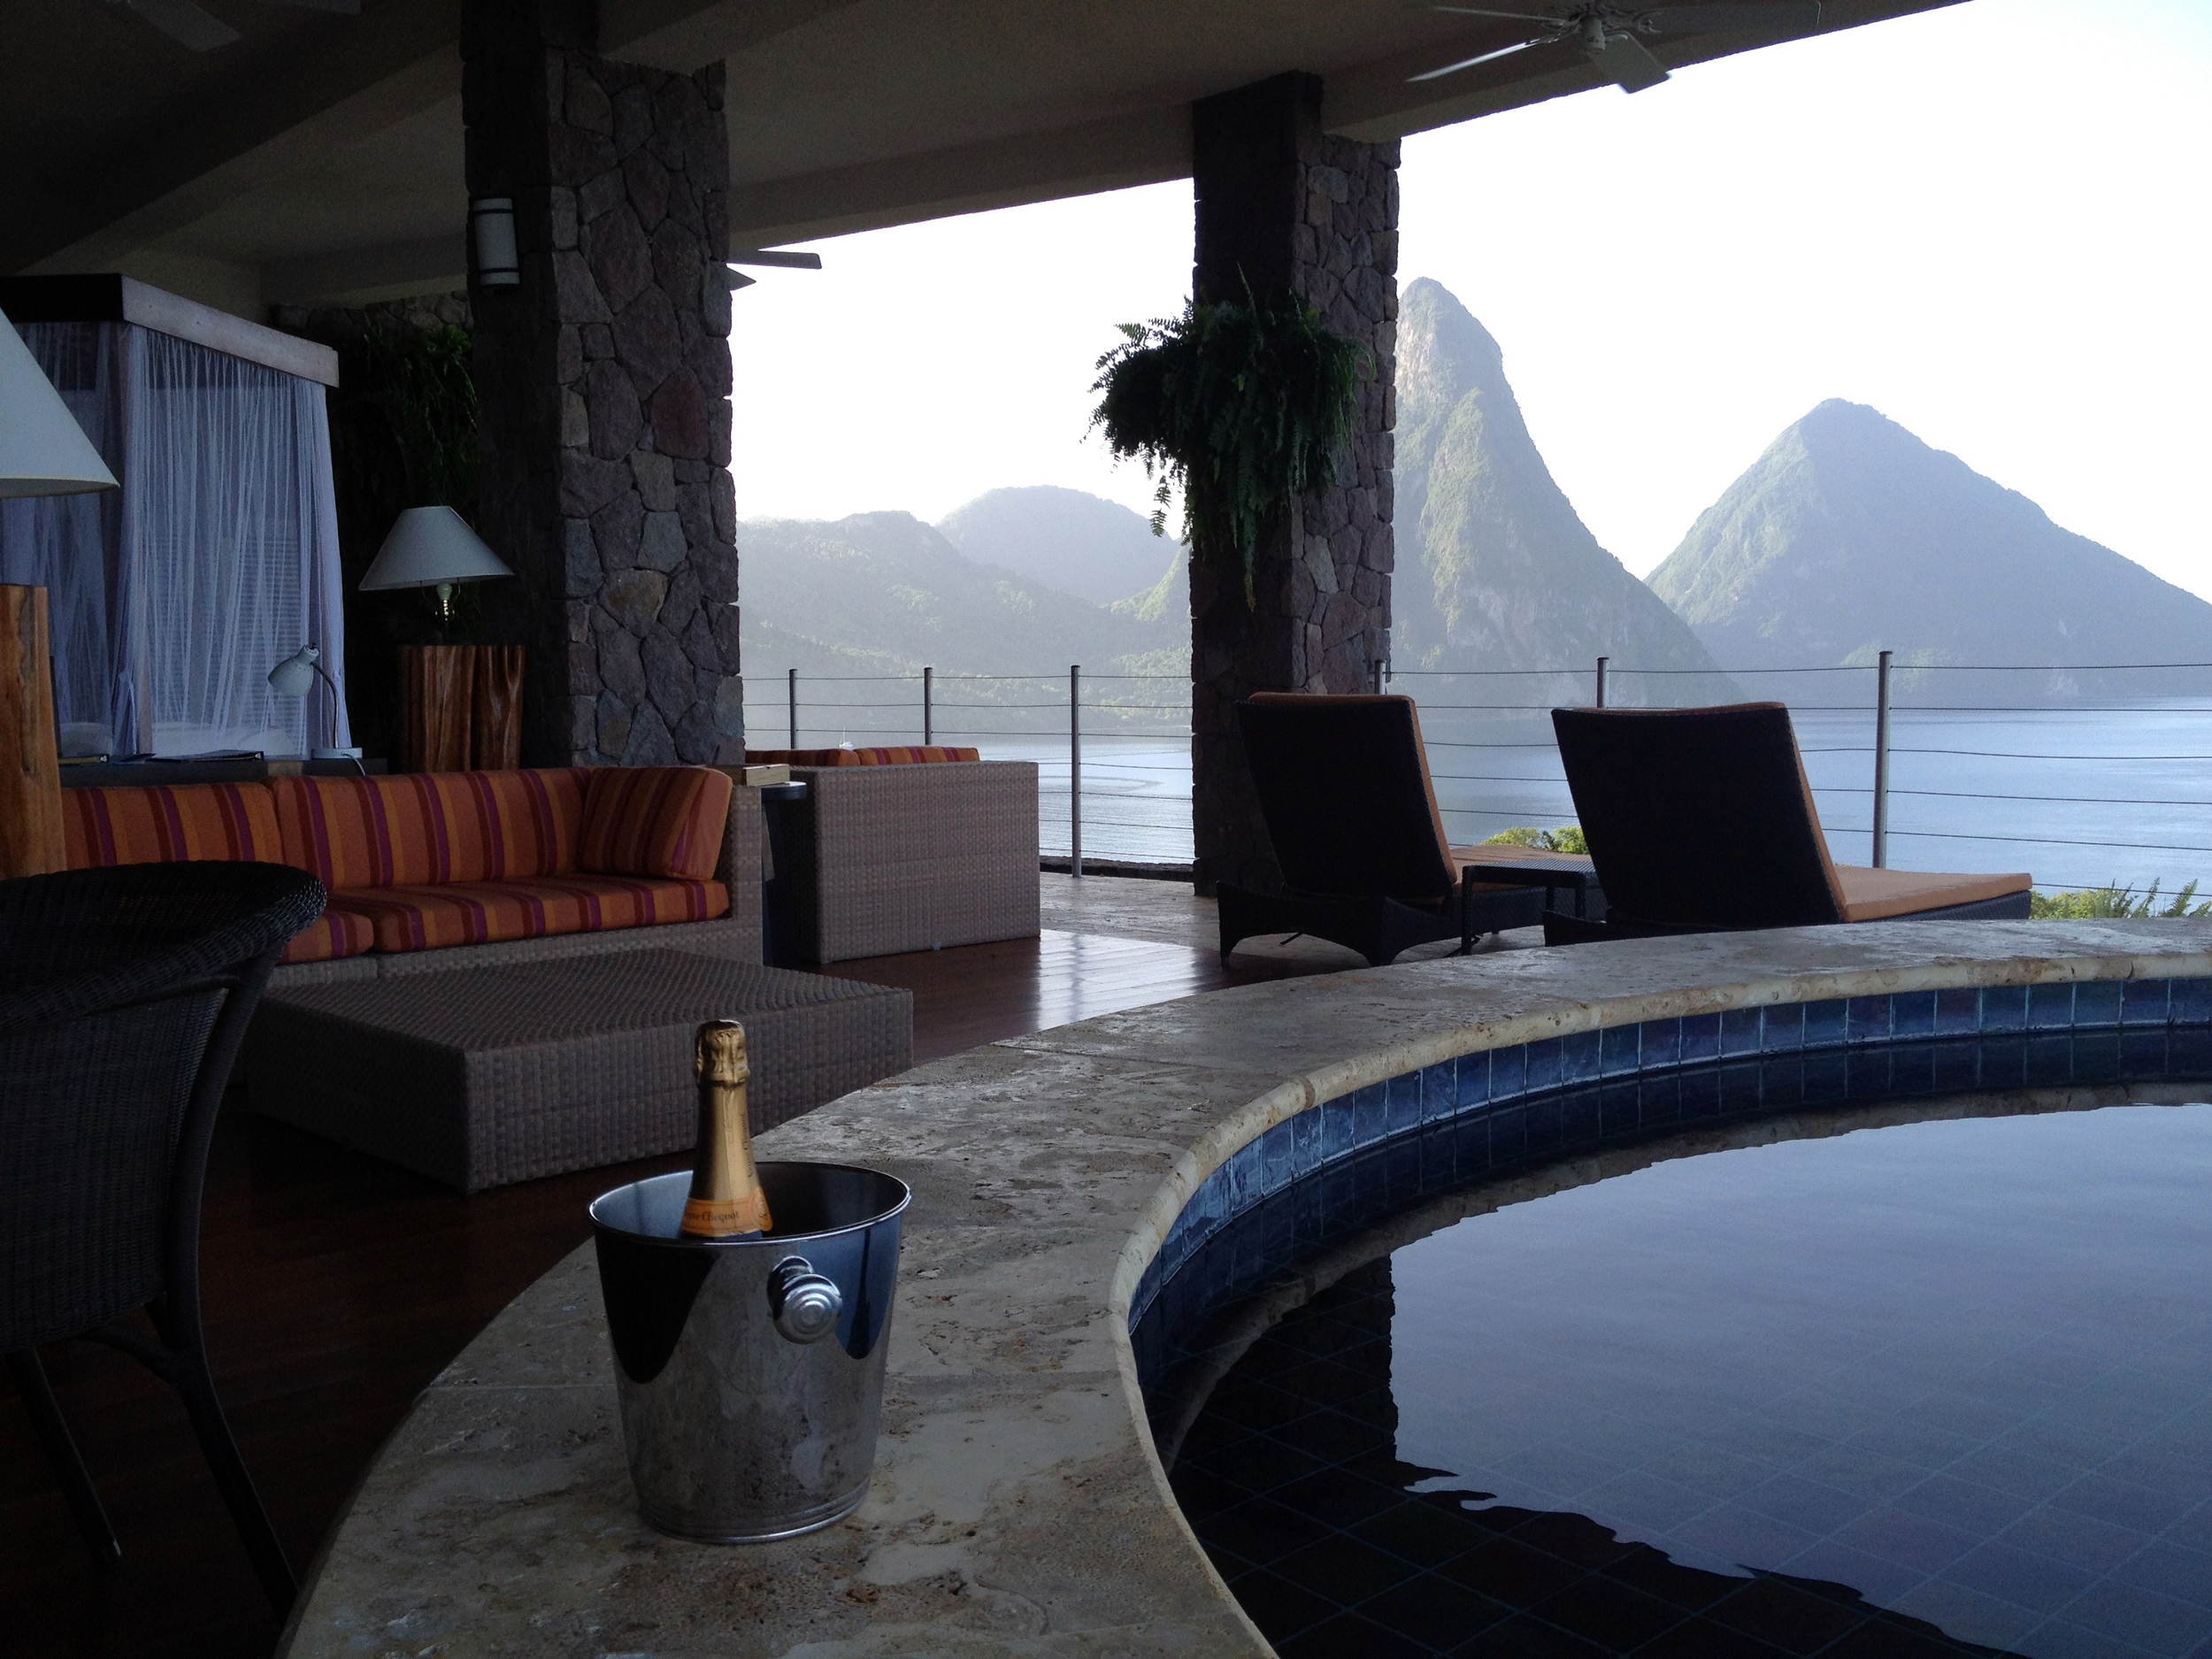 The Galaxy Suite at Jade Mountain Resort lacks a fourth wall, allowing its guests enjoy the infinity pool and a majestic view of the Pitons.